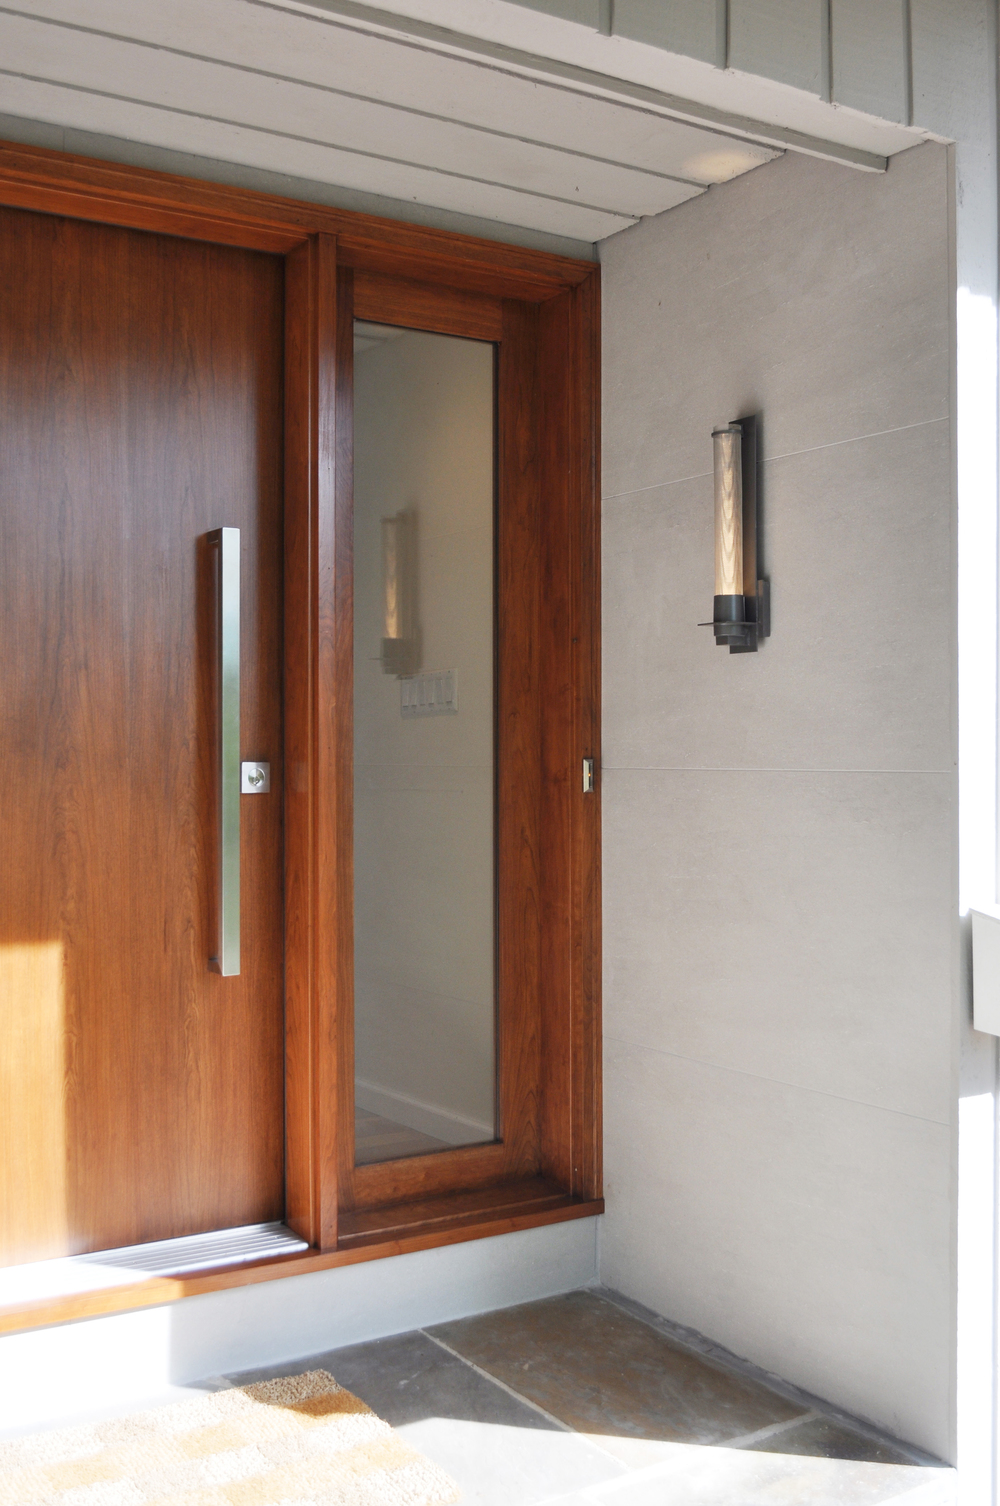 Front Door_Modern Cherry Slab Front Entry Door_Stainless Hardware_Hubbardton Forge Sconce_Porcelain Wall Tile_KAM DESIGN.jpg